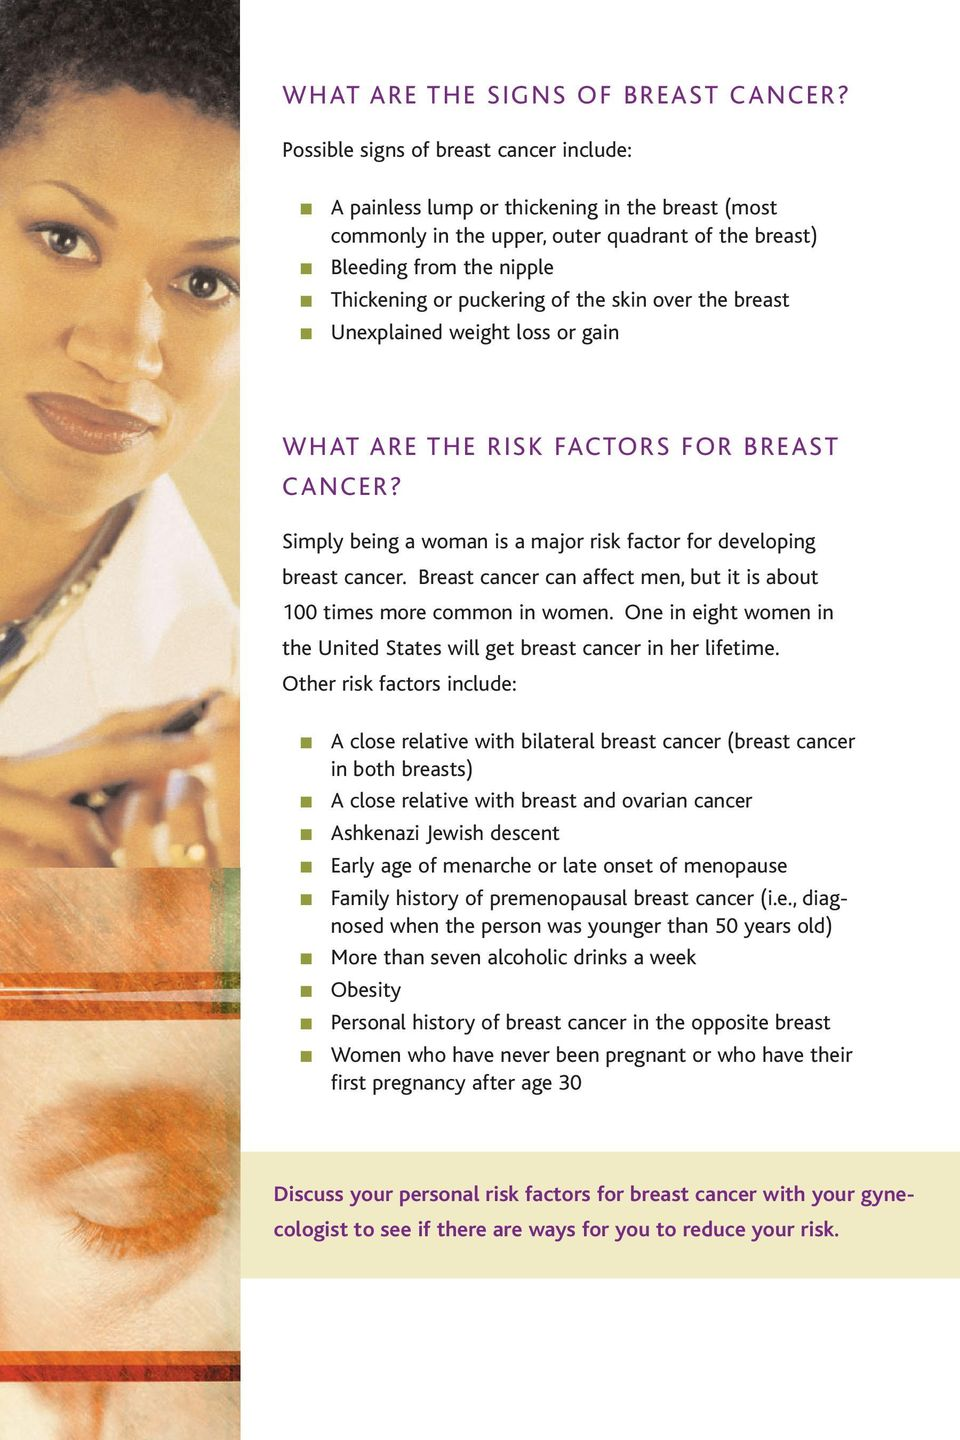 skin over the breast Unexplained weight loss or gain WHAT ARE THE RISK FACTORS FOR BREAST CANCER? Simply being a woman is a major risk factor for developing breast cancer.